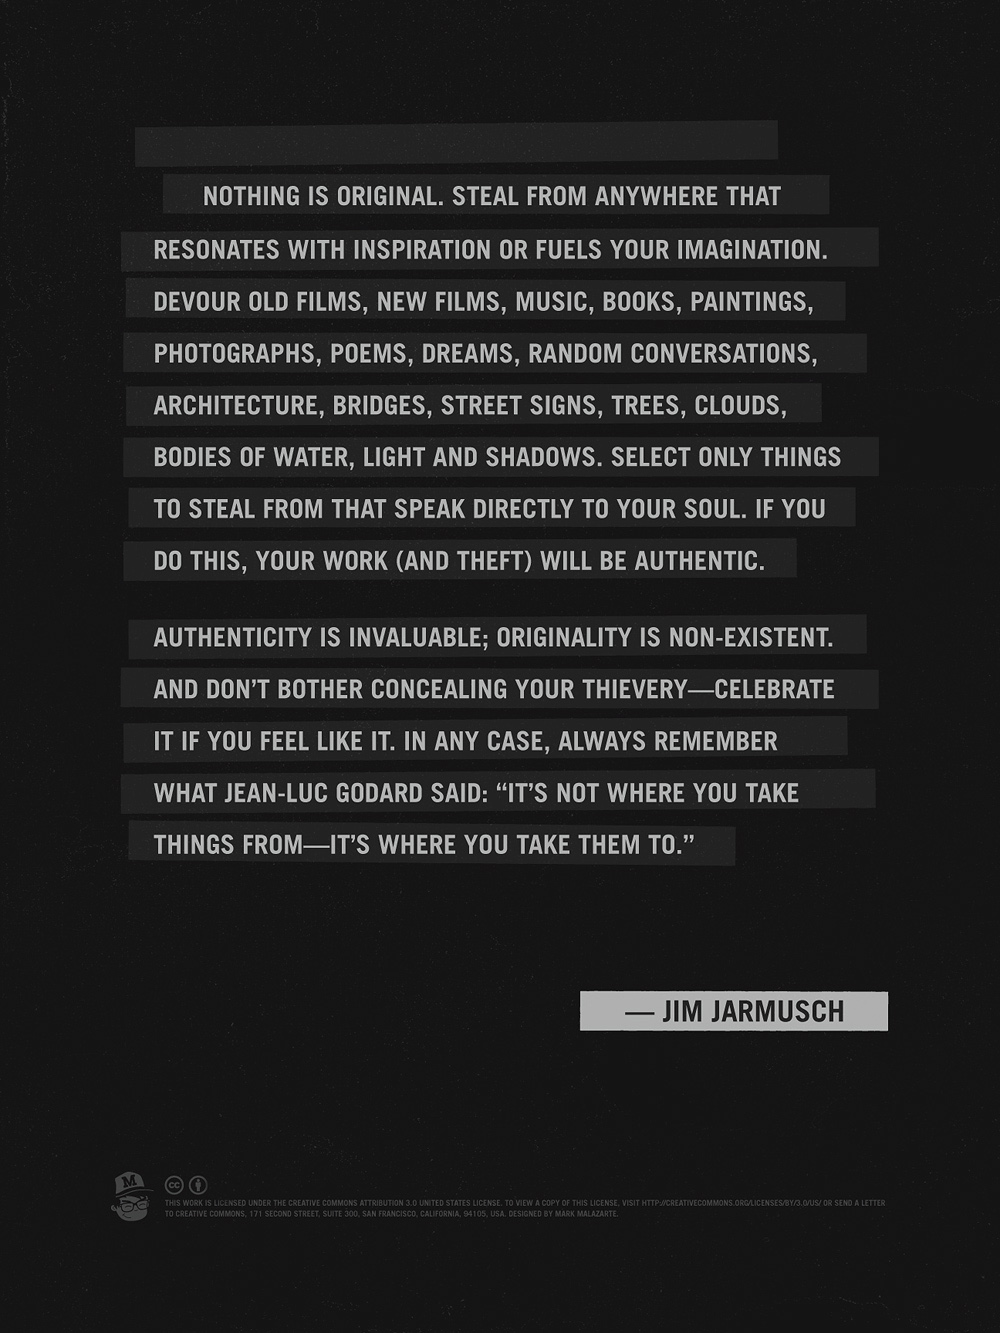 Jim Jarmusch's quote #8